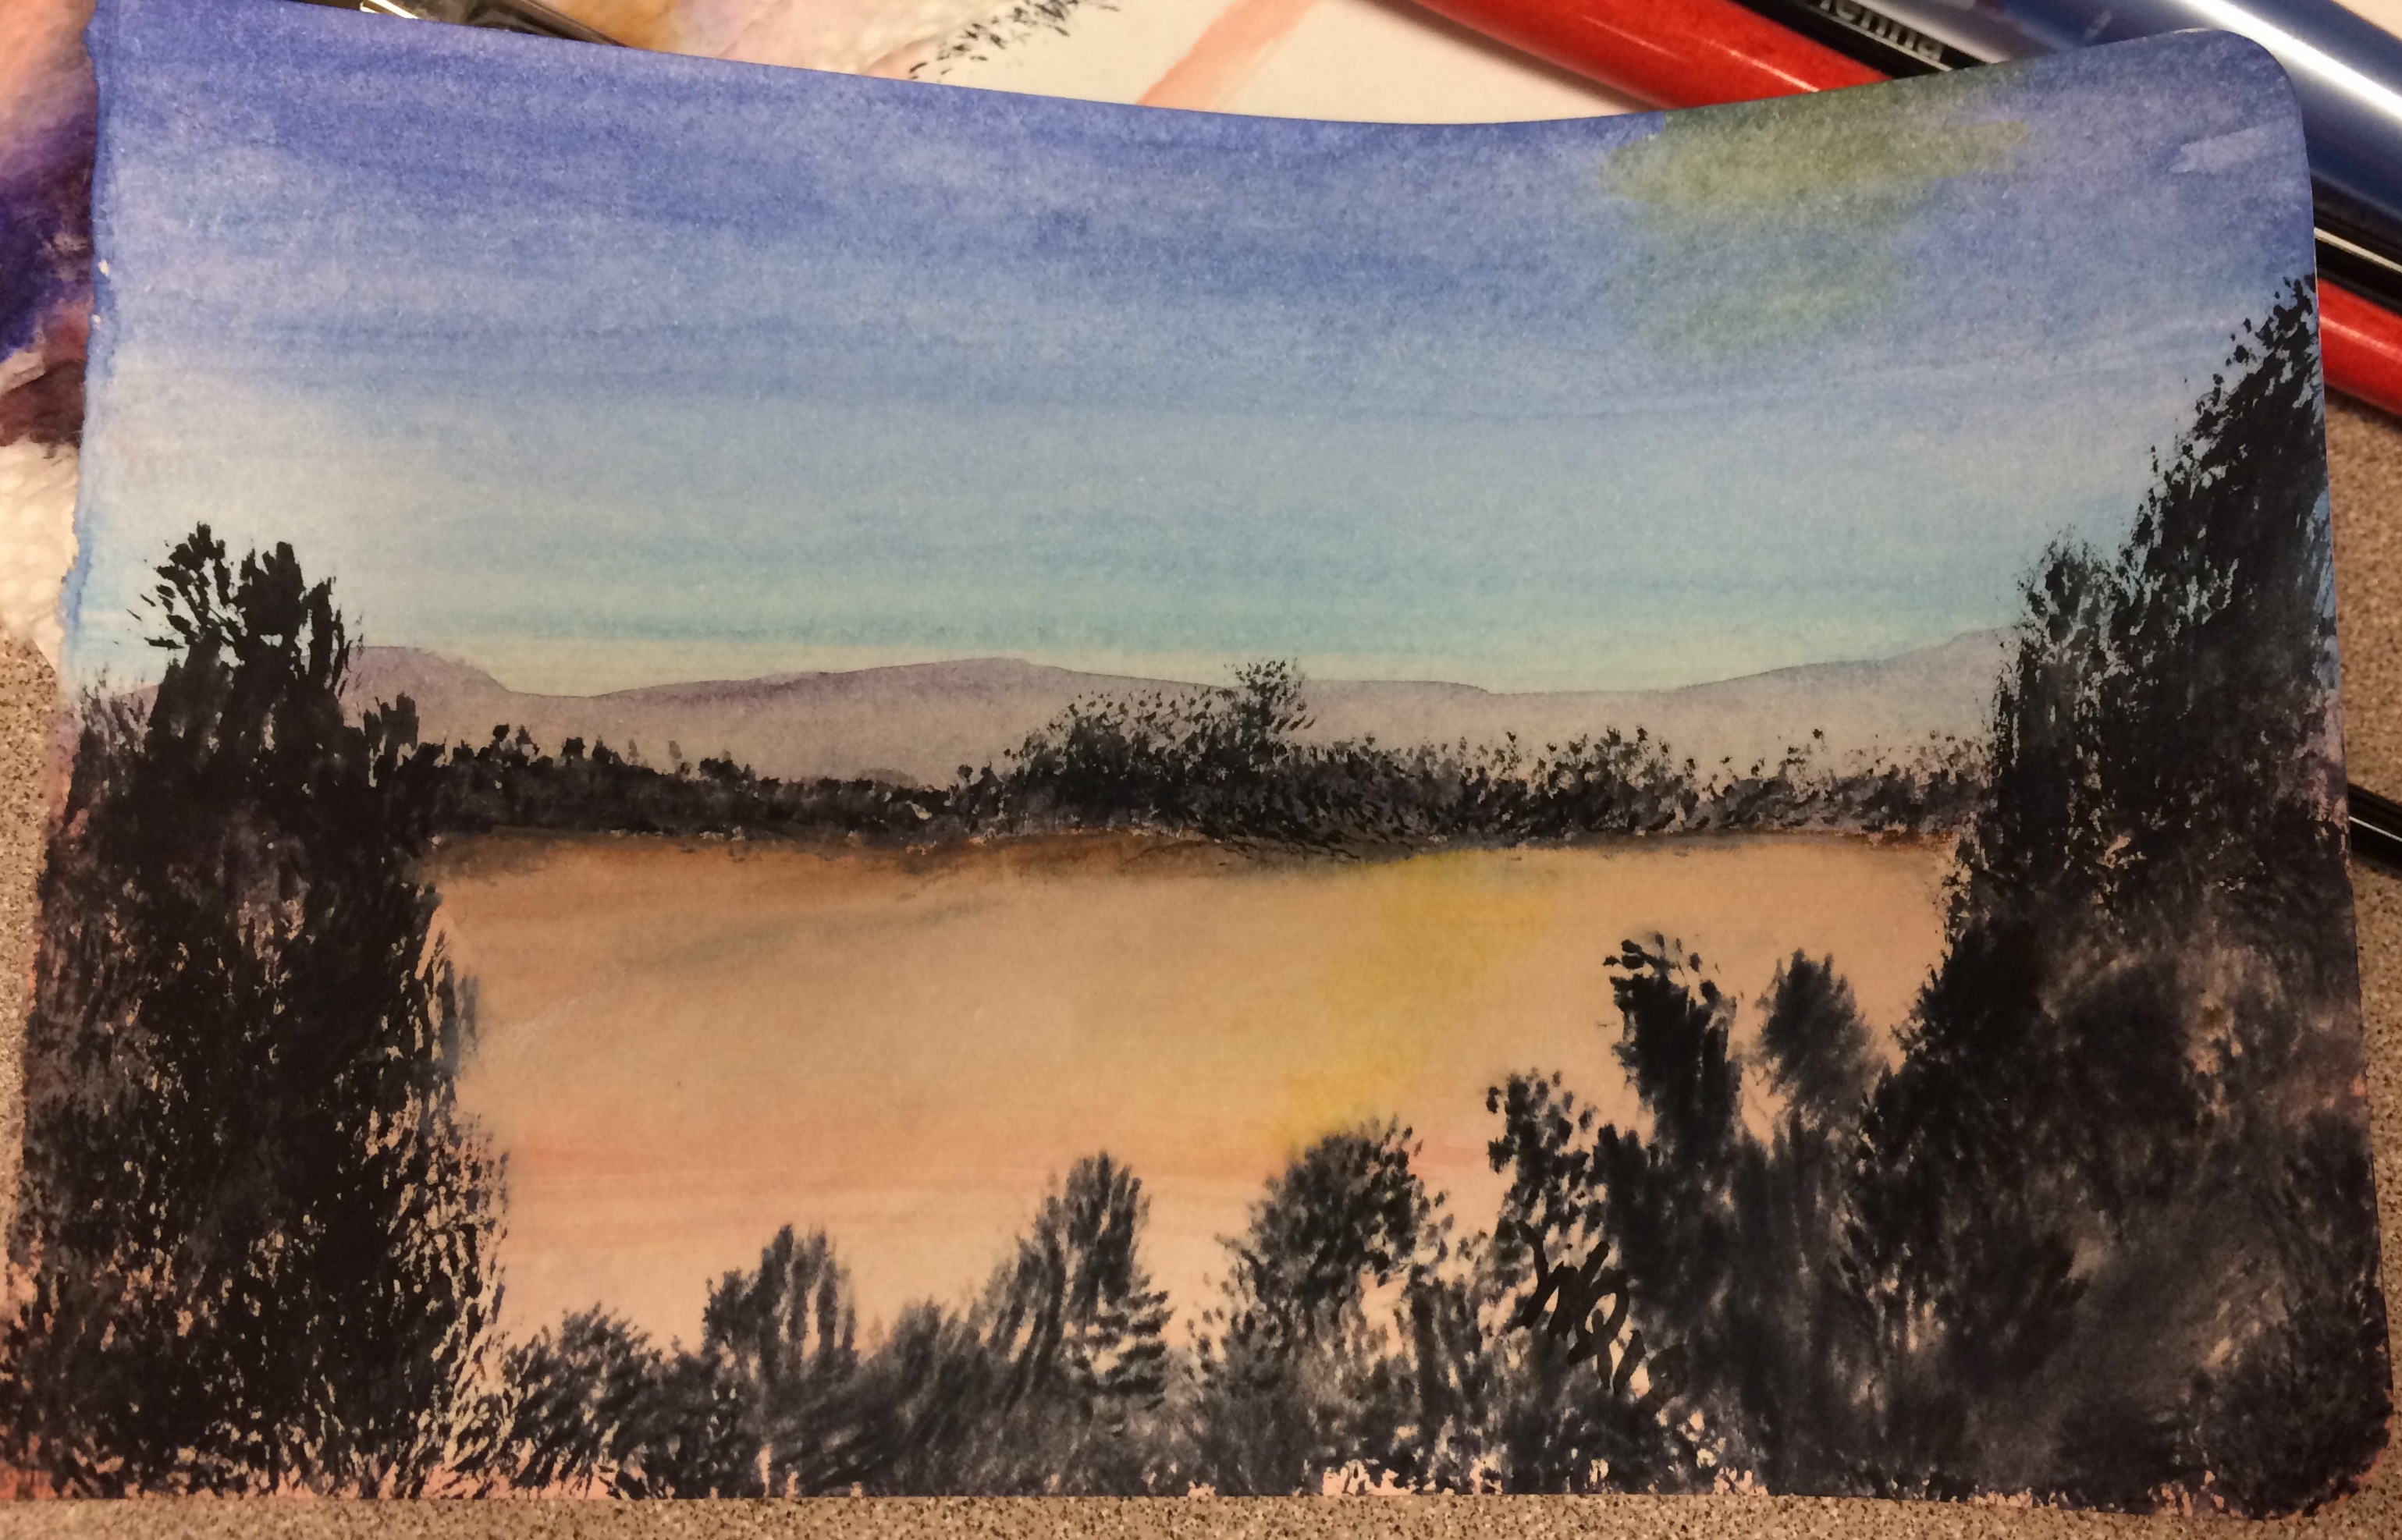 watercolour painting of dawn sky, mountains, silhouetted trees